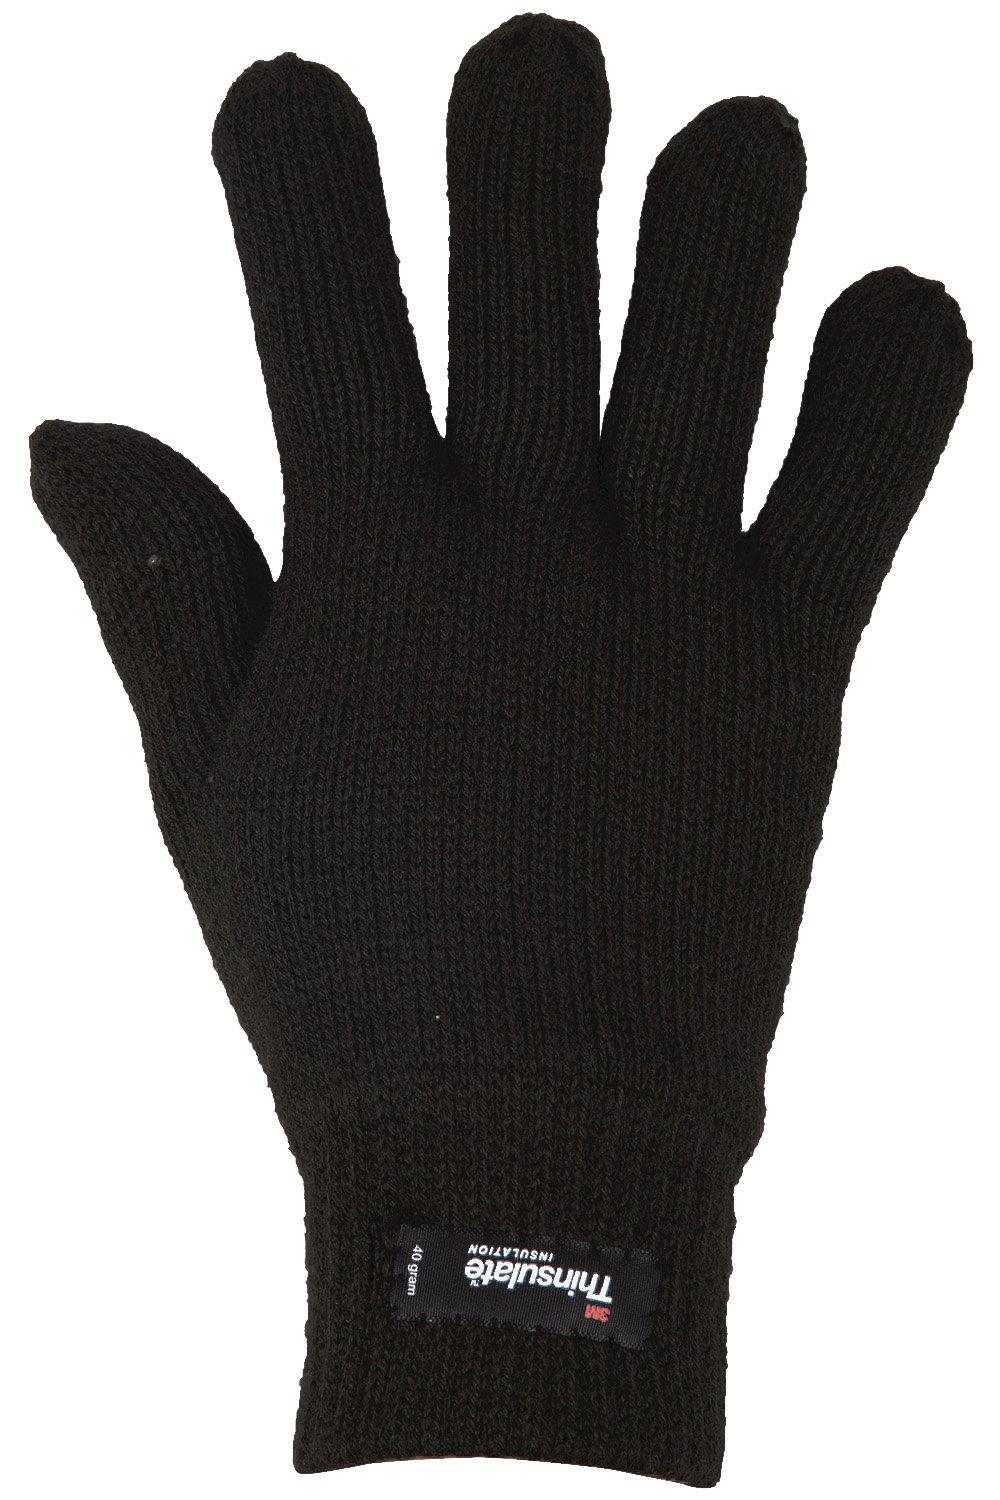 Mountain Warehouse Thinsulate Herren gestrickte Handschuhe warm isoliert